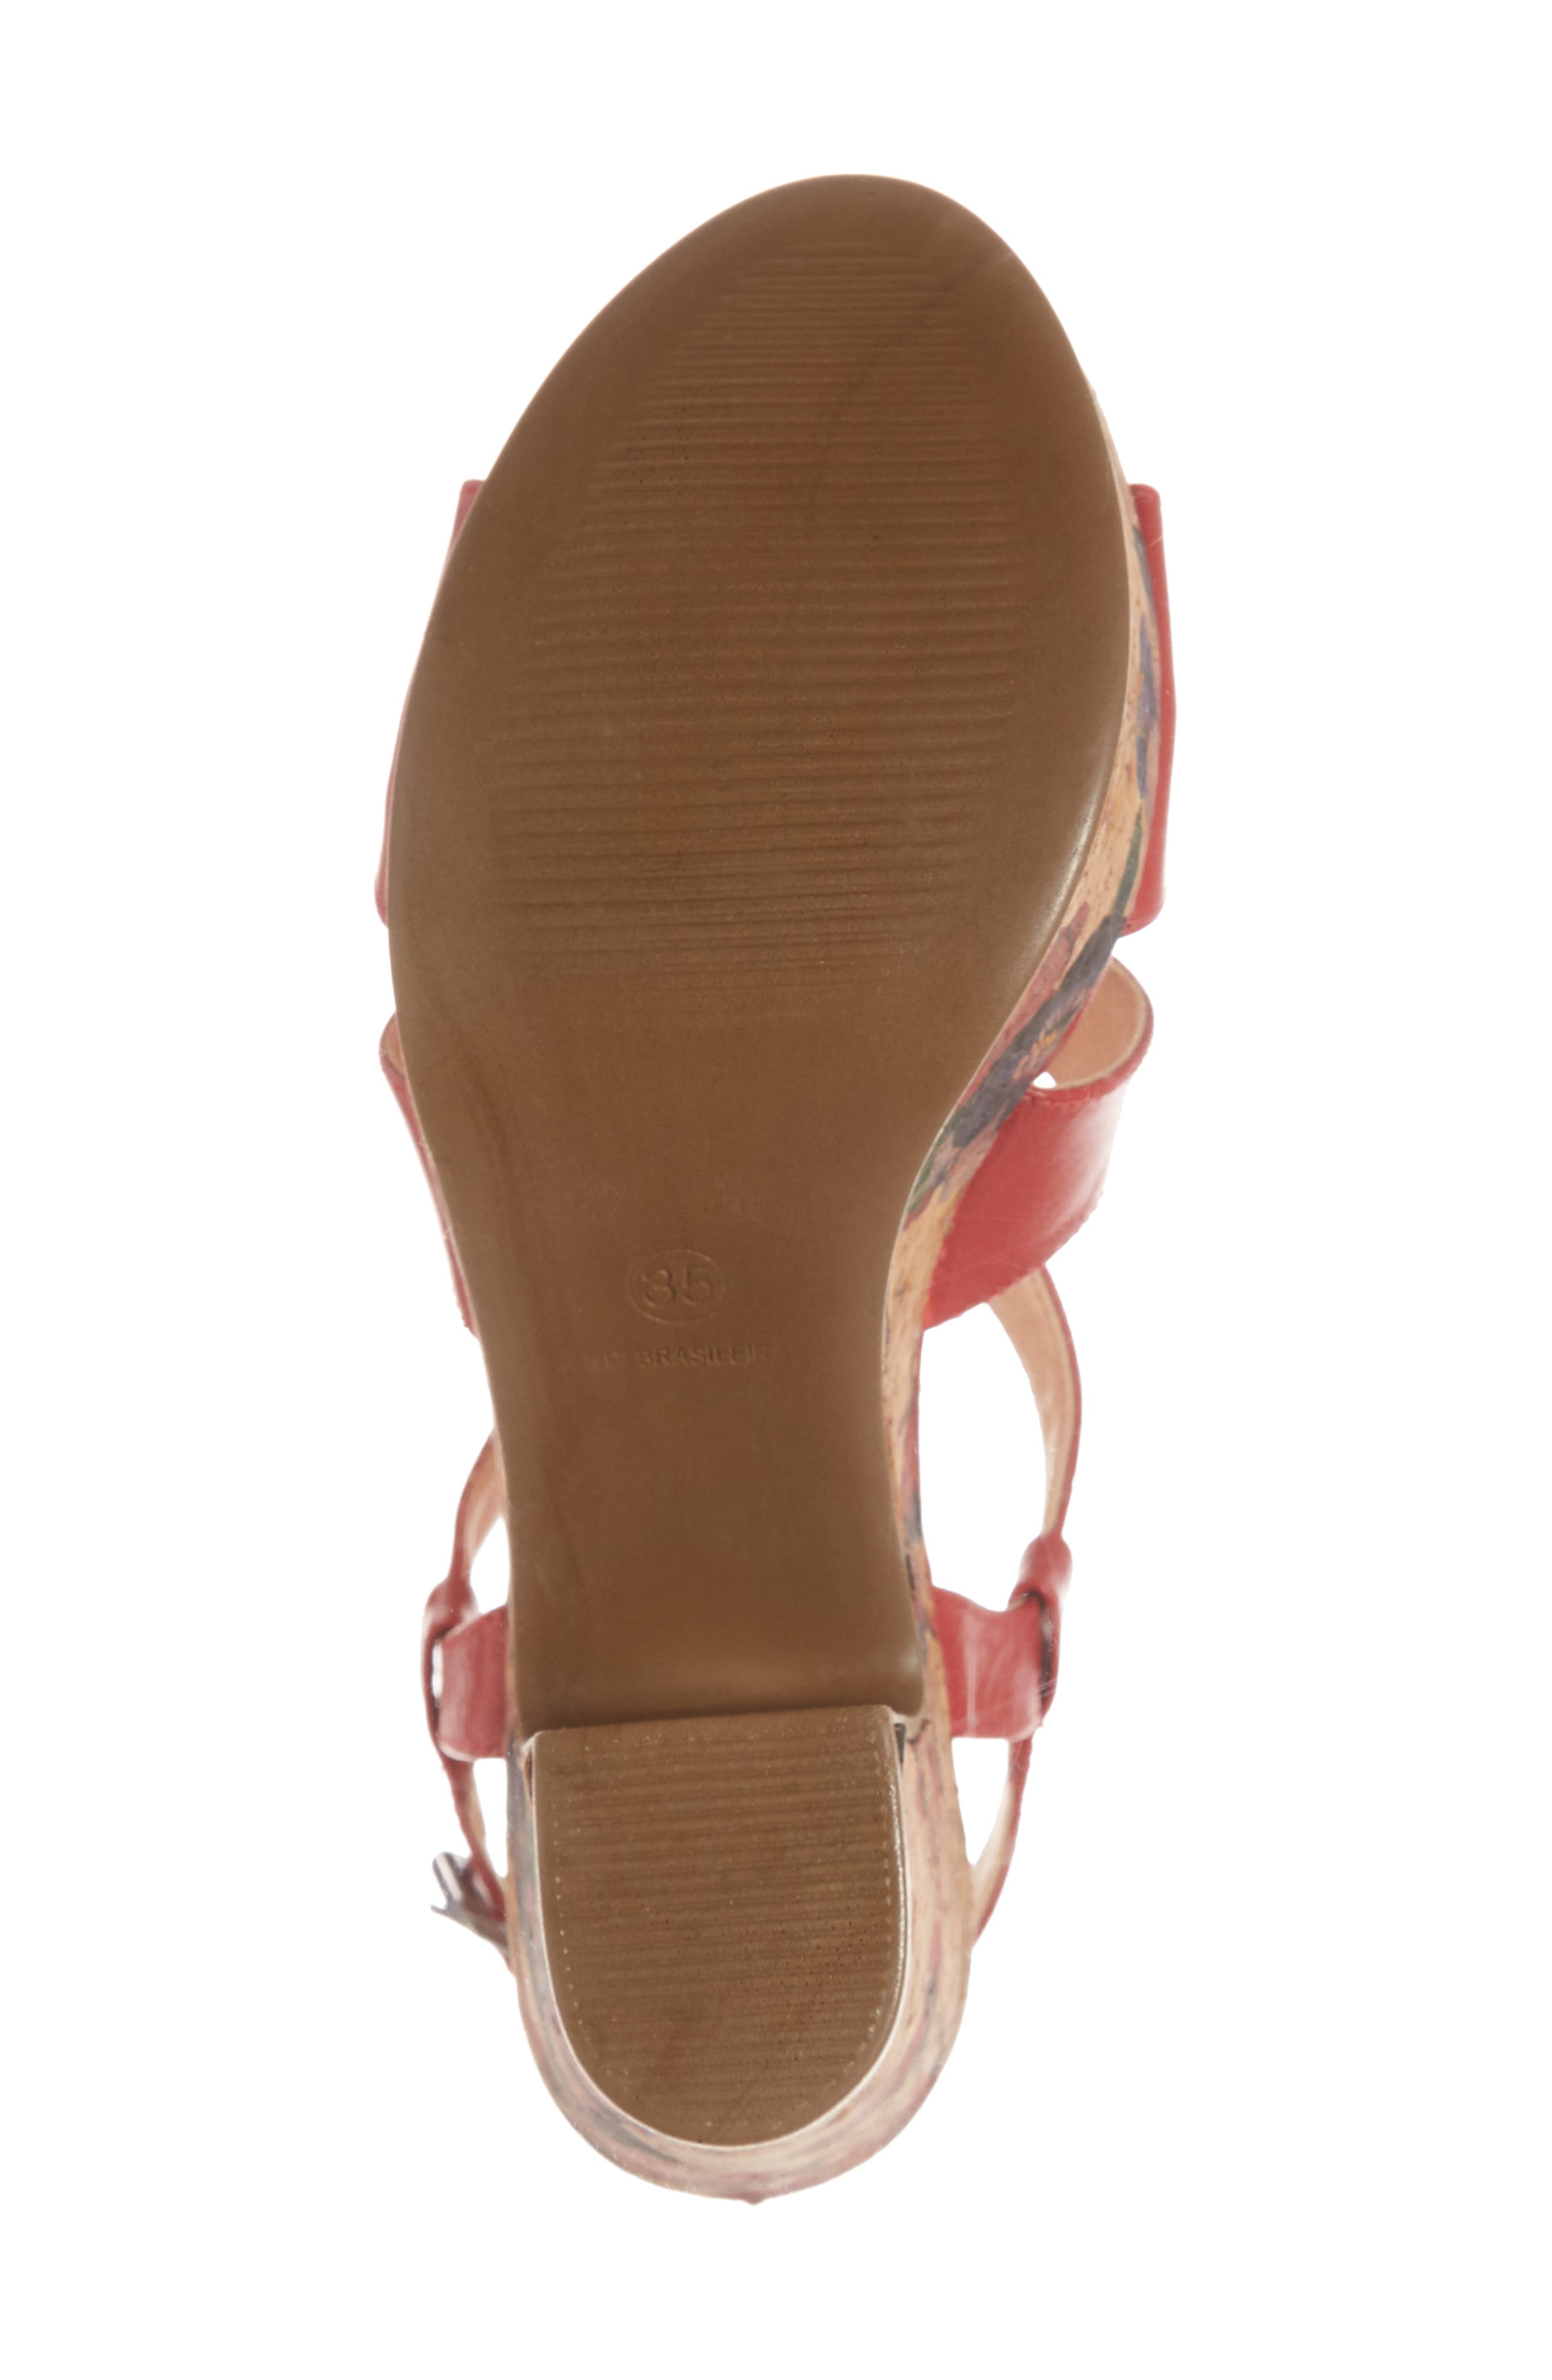 Victoria Platform Sandal,                             Alternate thumbnail 6, color,                             Red Leather